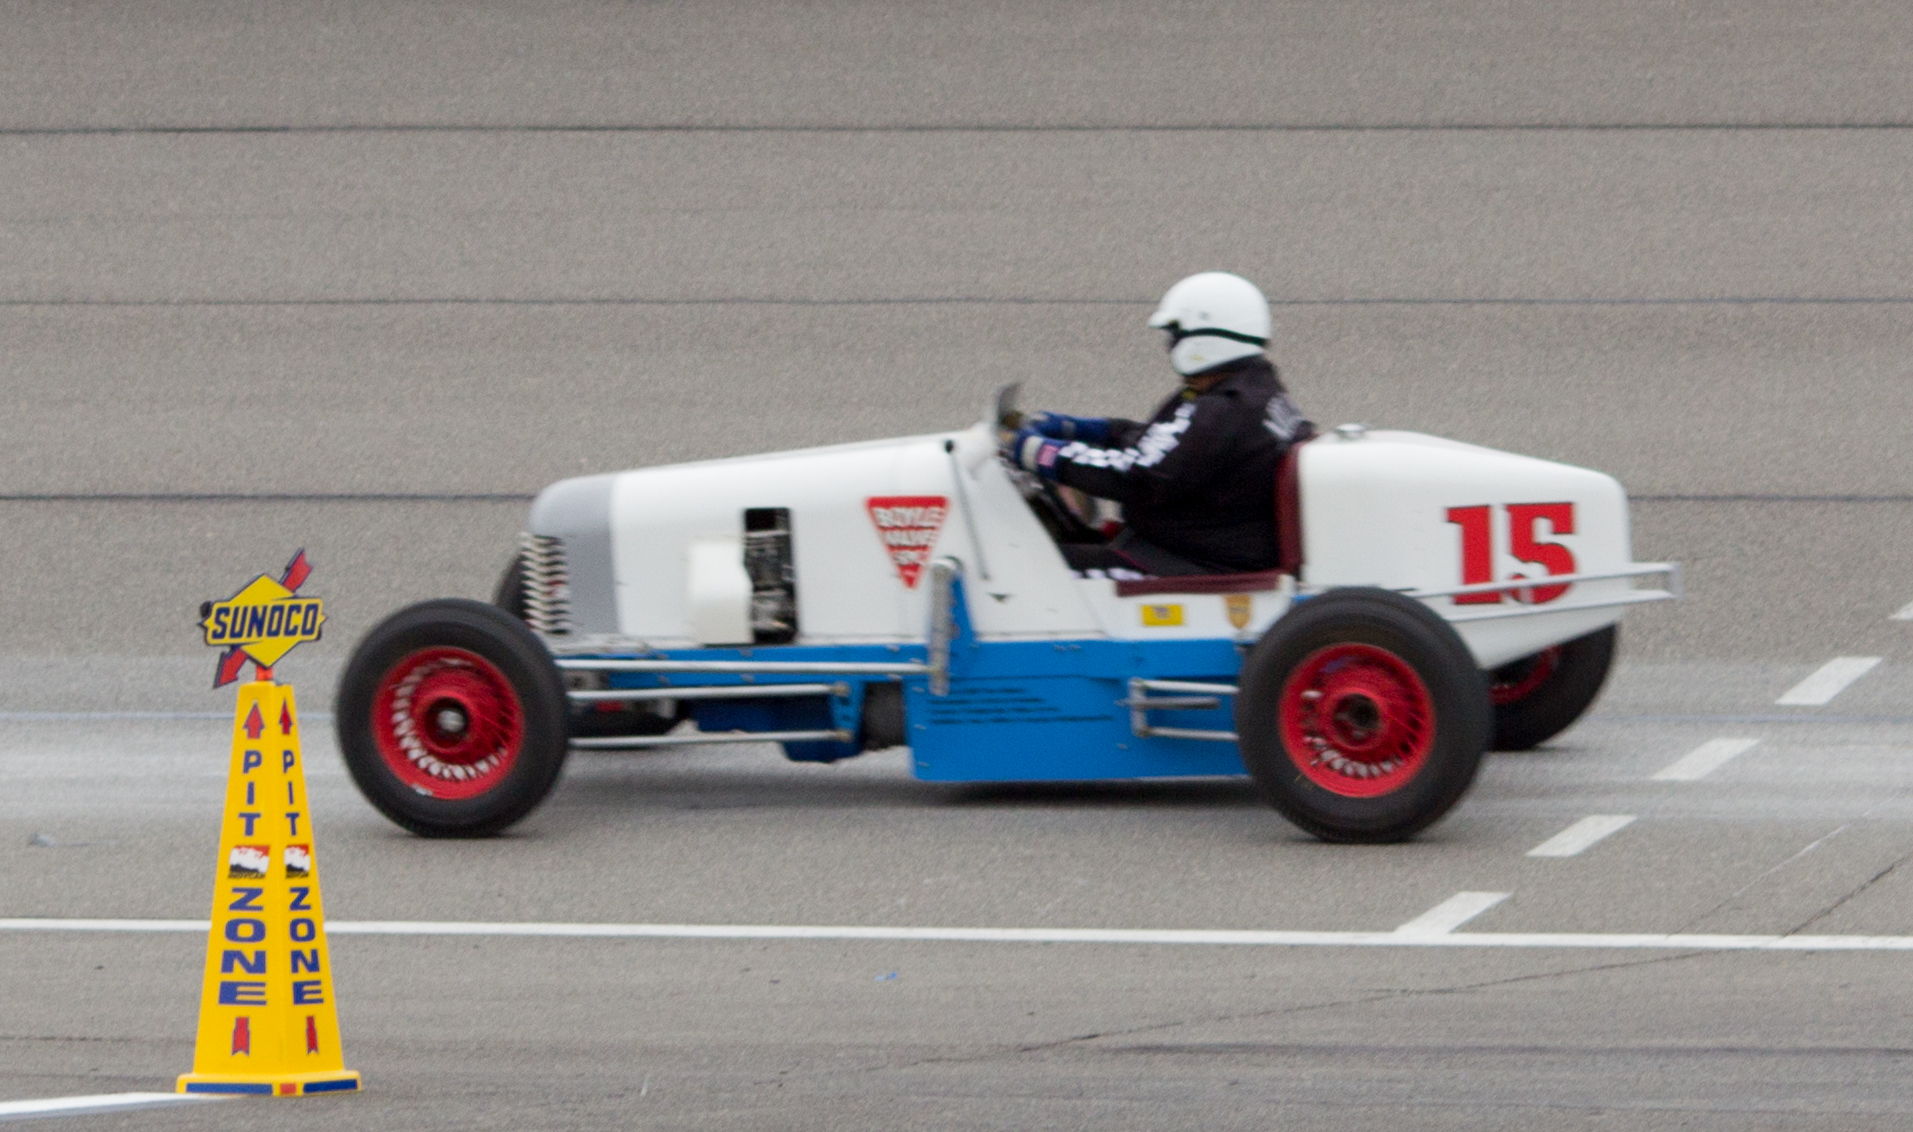 Amazing Old Indy Car For Sale Mold - Classic Cars Ideas - boiq.info